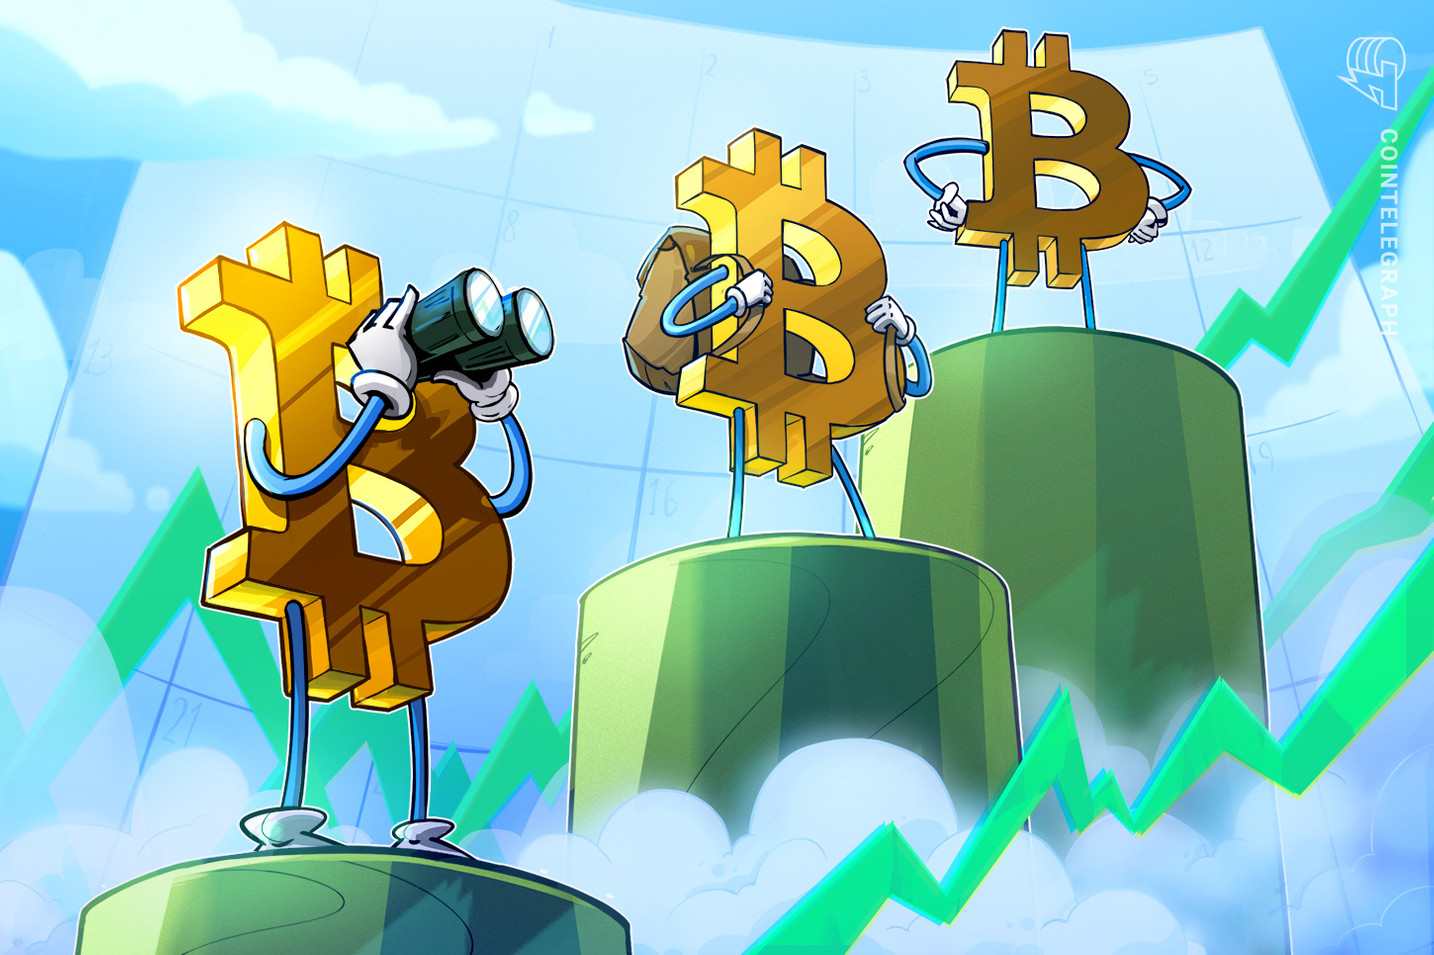 Bitcoin's next top could be between $75K and $306K, Kraken research suggests